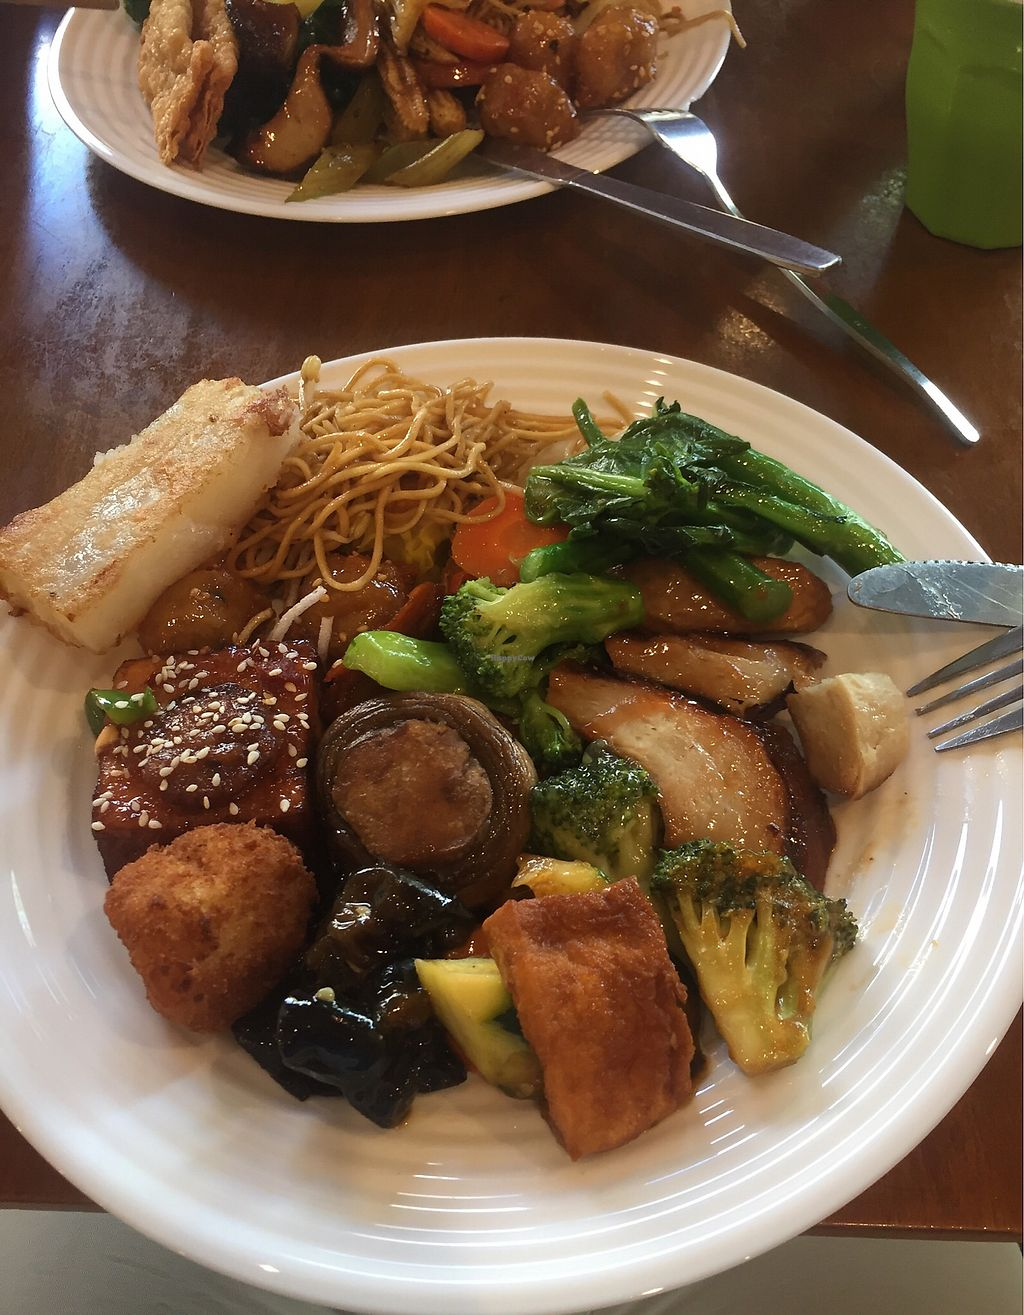 "Photo of Green Gourmet  by <a href=""/members/profile/jakeadamlee"">jakeadamlee</a> <br/>The white rectangle thing wasn't good. The duck thing was very convincing! <br/> October 31, 2017  - <a href='/contact/abuse/image/482/320350'>Report</a>"